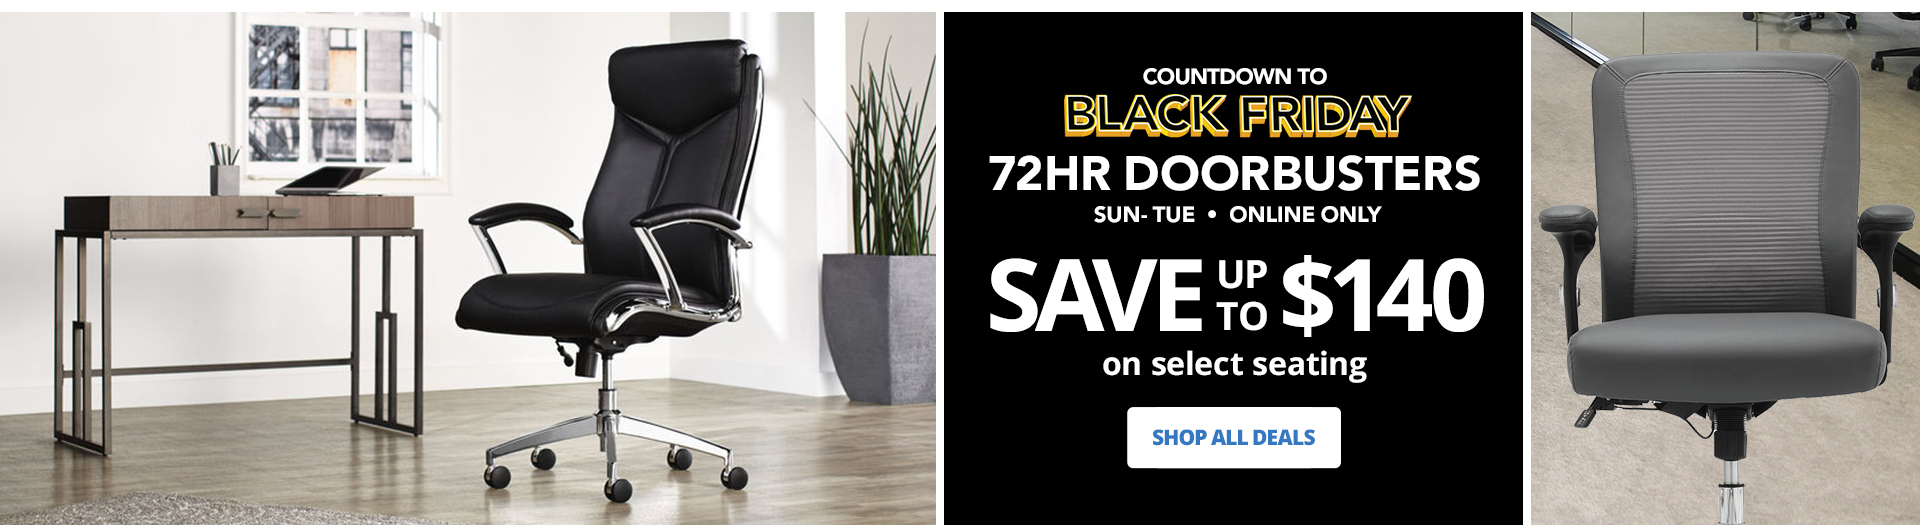 Black Friday 72HR Doorbusters Save 50% On Select Seating